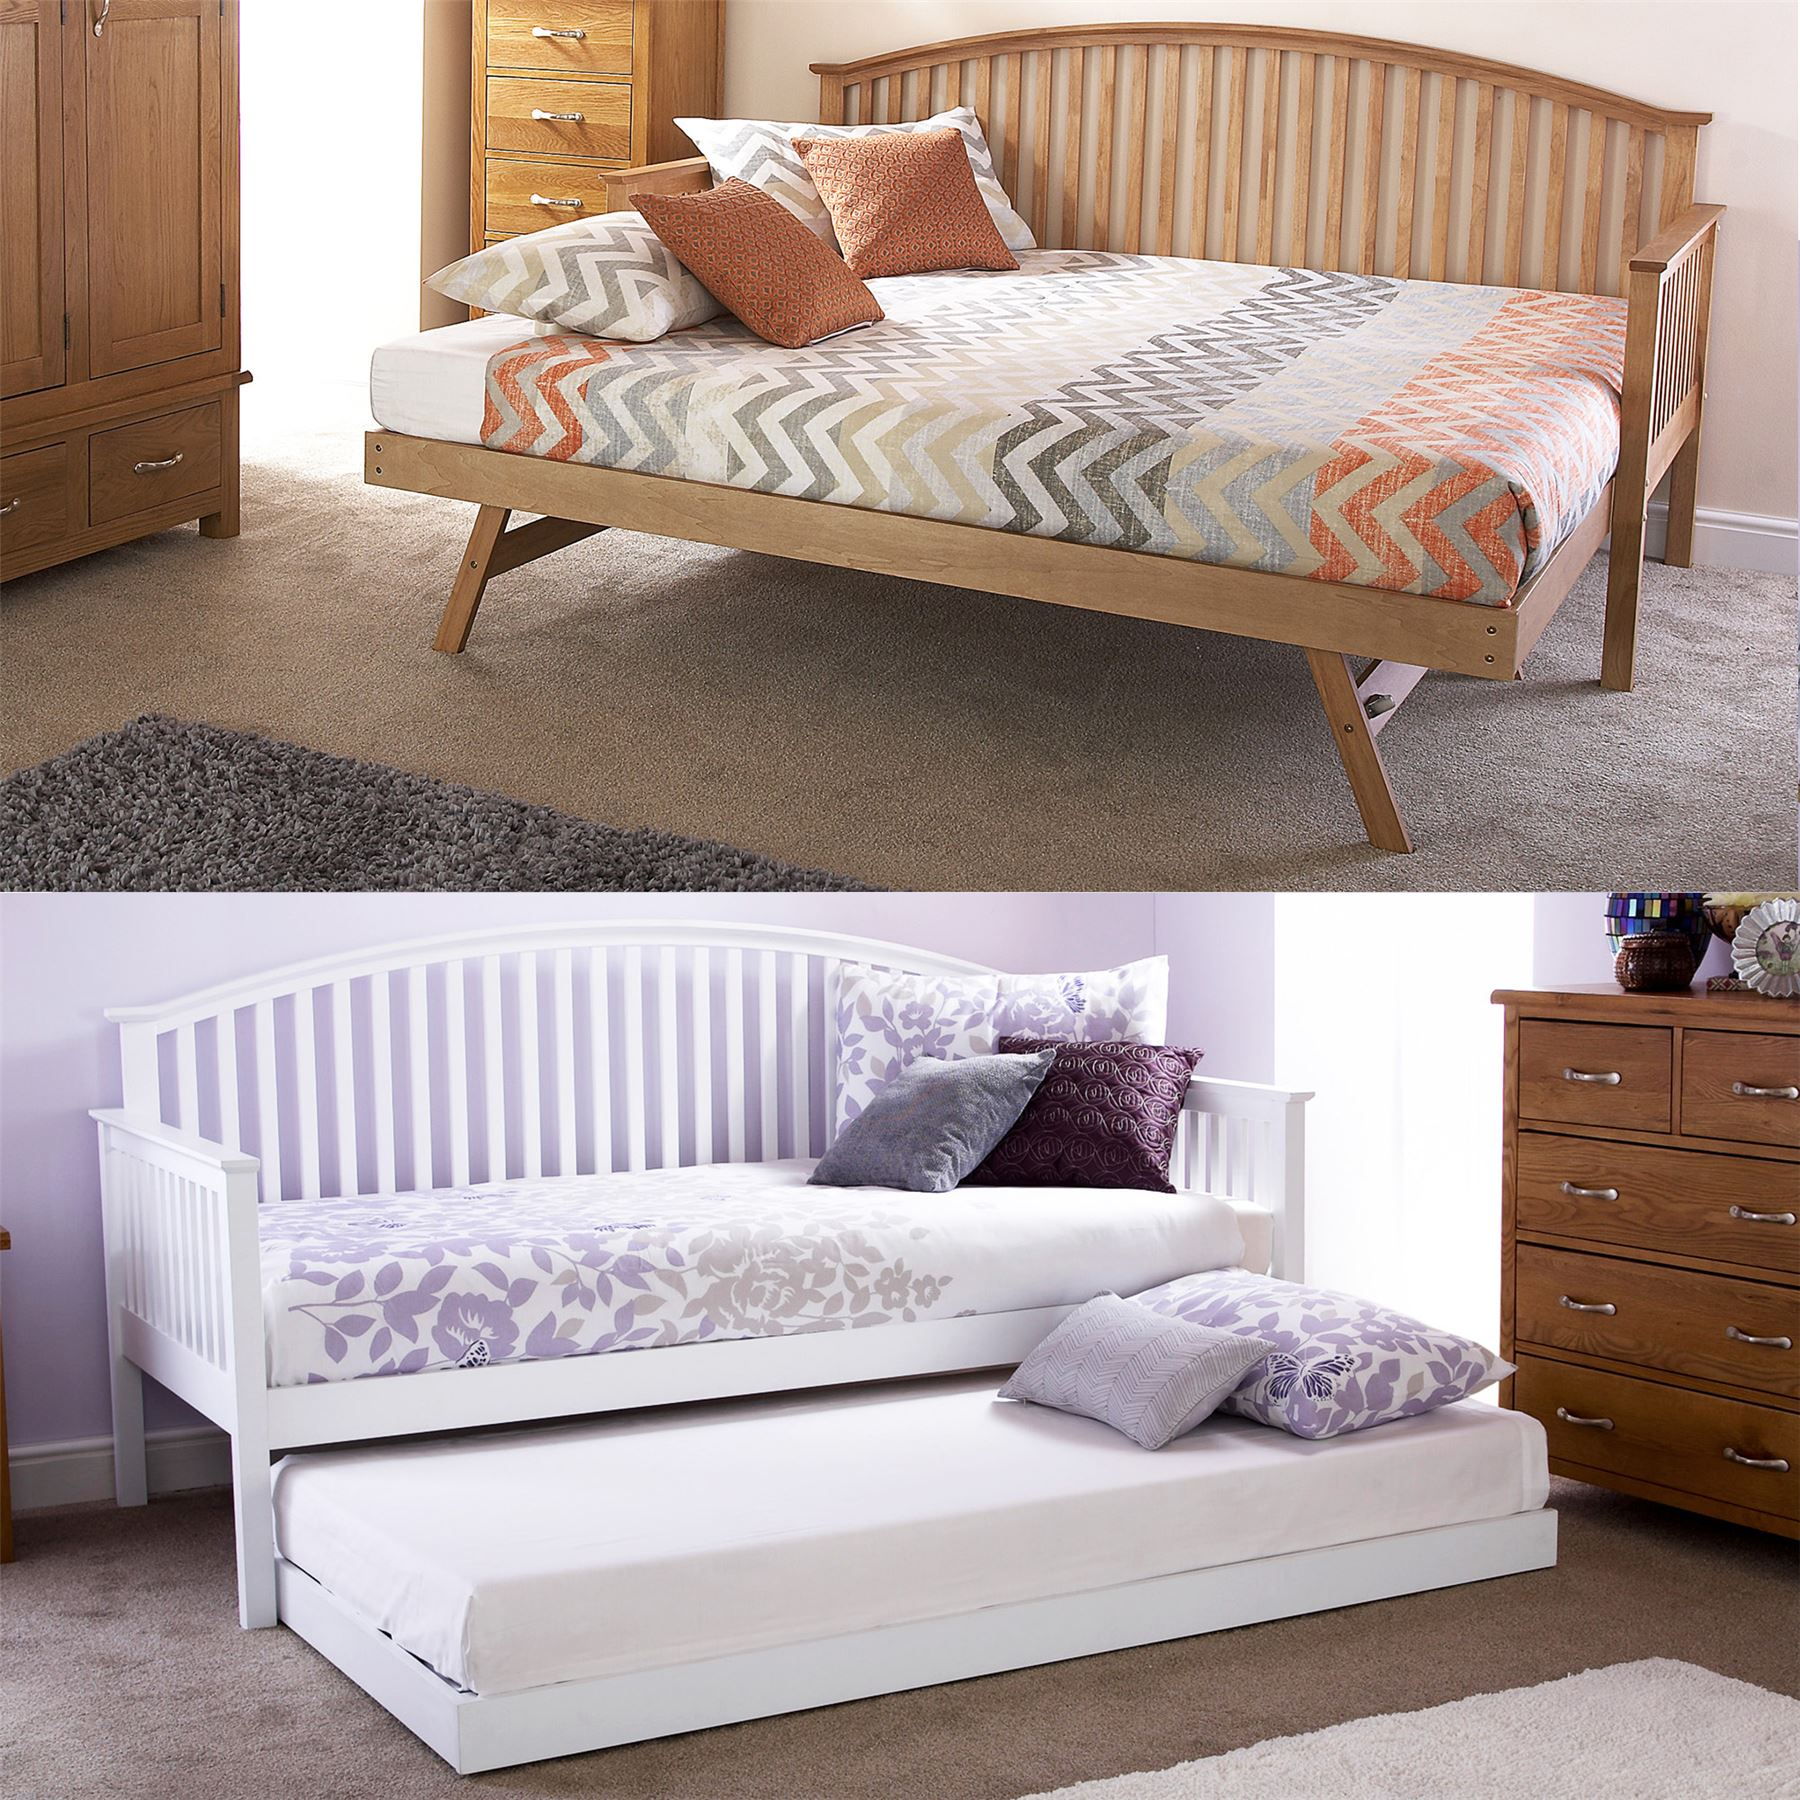 daybed furniture day lovely girl with trundle for best pinterest ideas bed girls mherger on